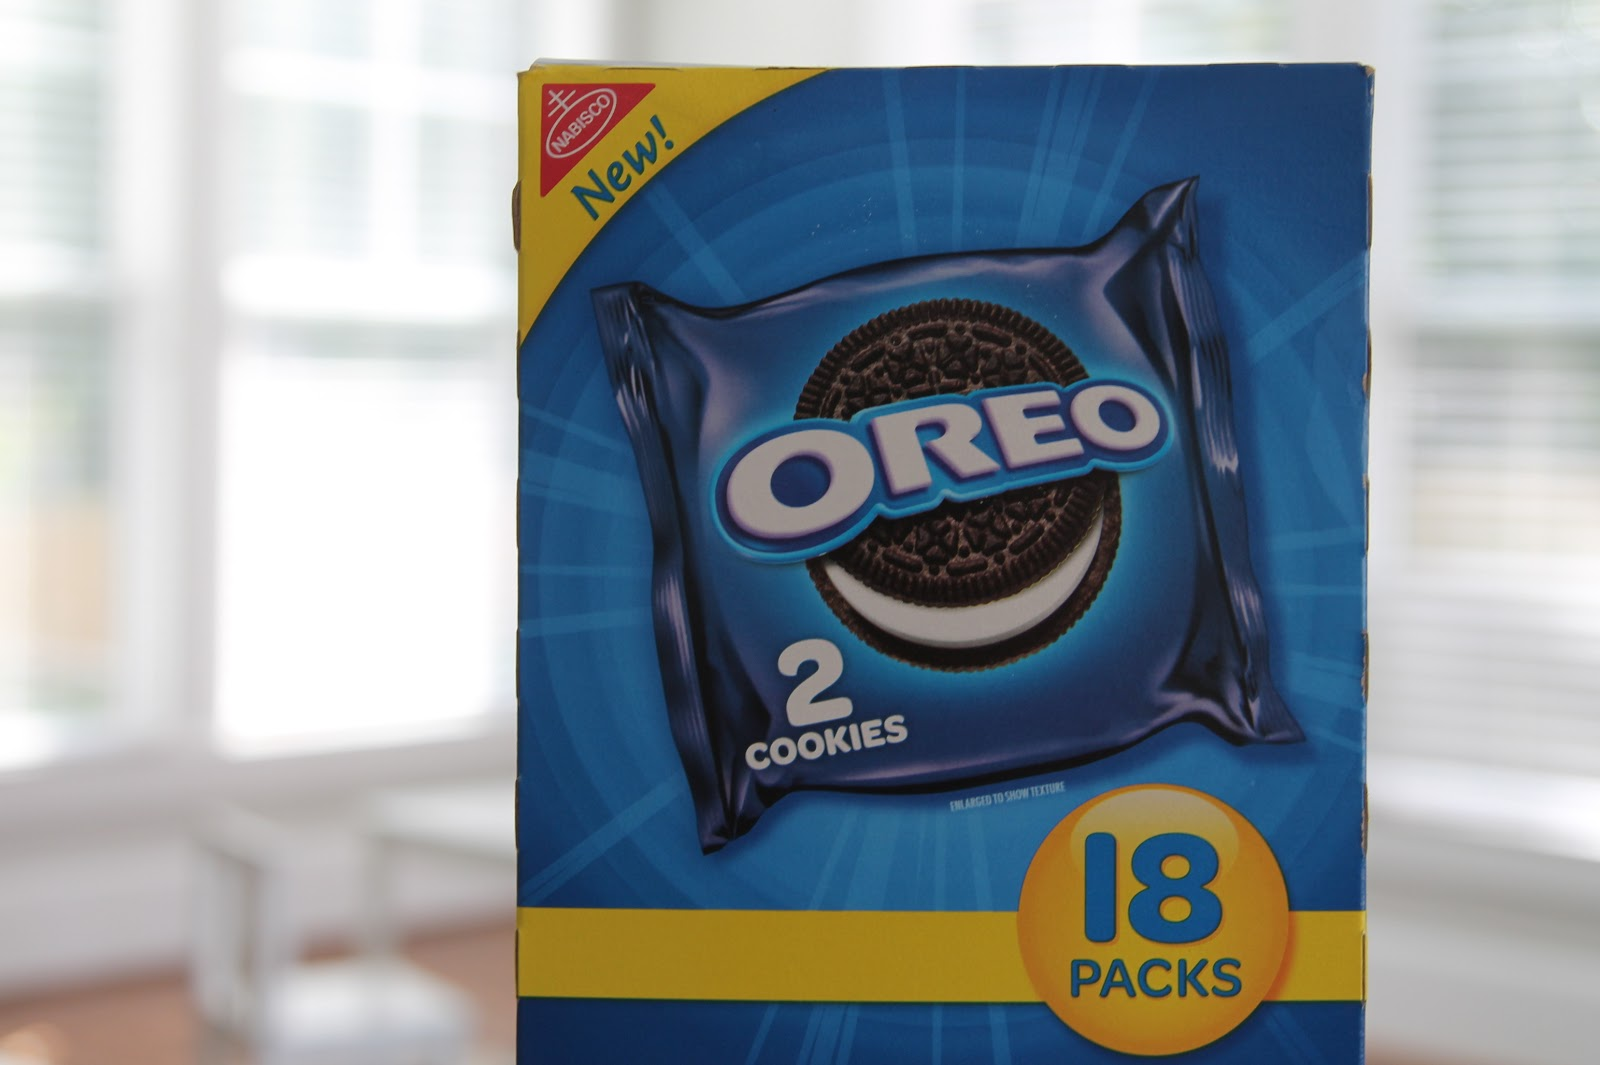 Summer Snack Ideas With The New Oreo 2-Pack